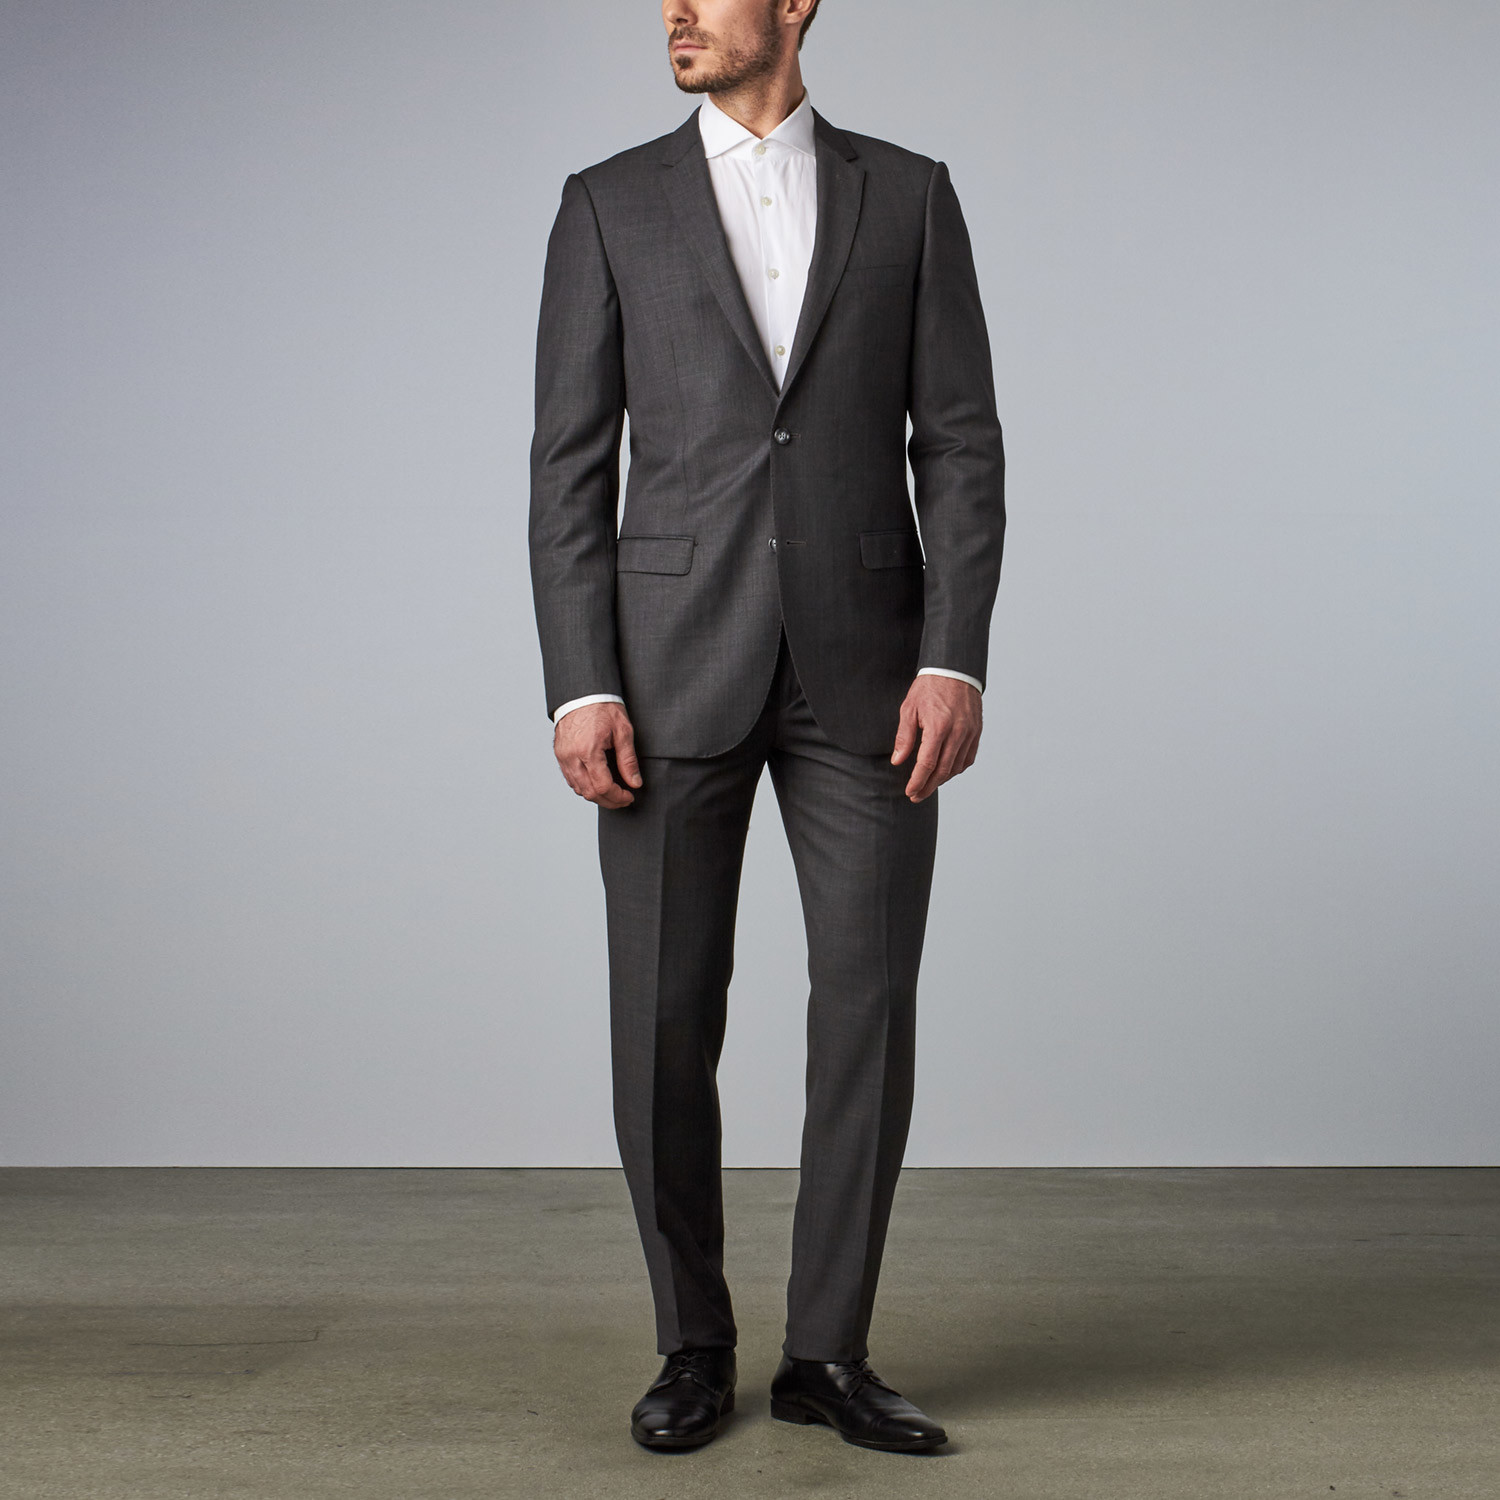 Bella Vita // Slim-Fit Suit // Charcoal Sharkskin (US: 36S